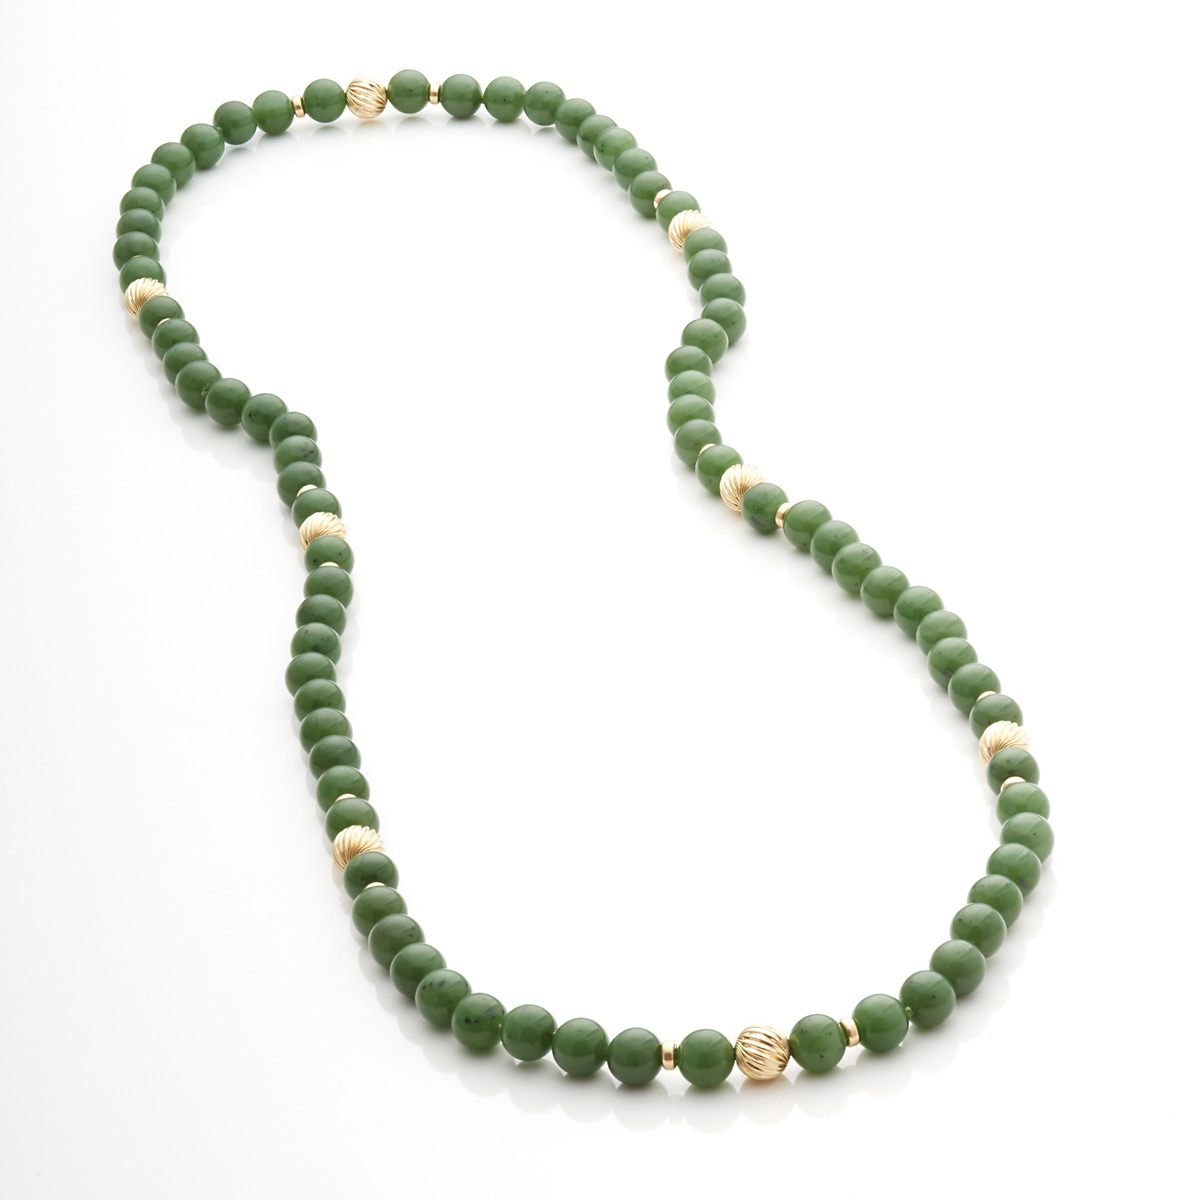 Gump's Green Nephrite & Gold Bead Rope